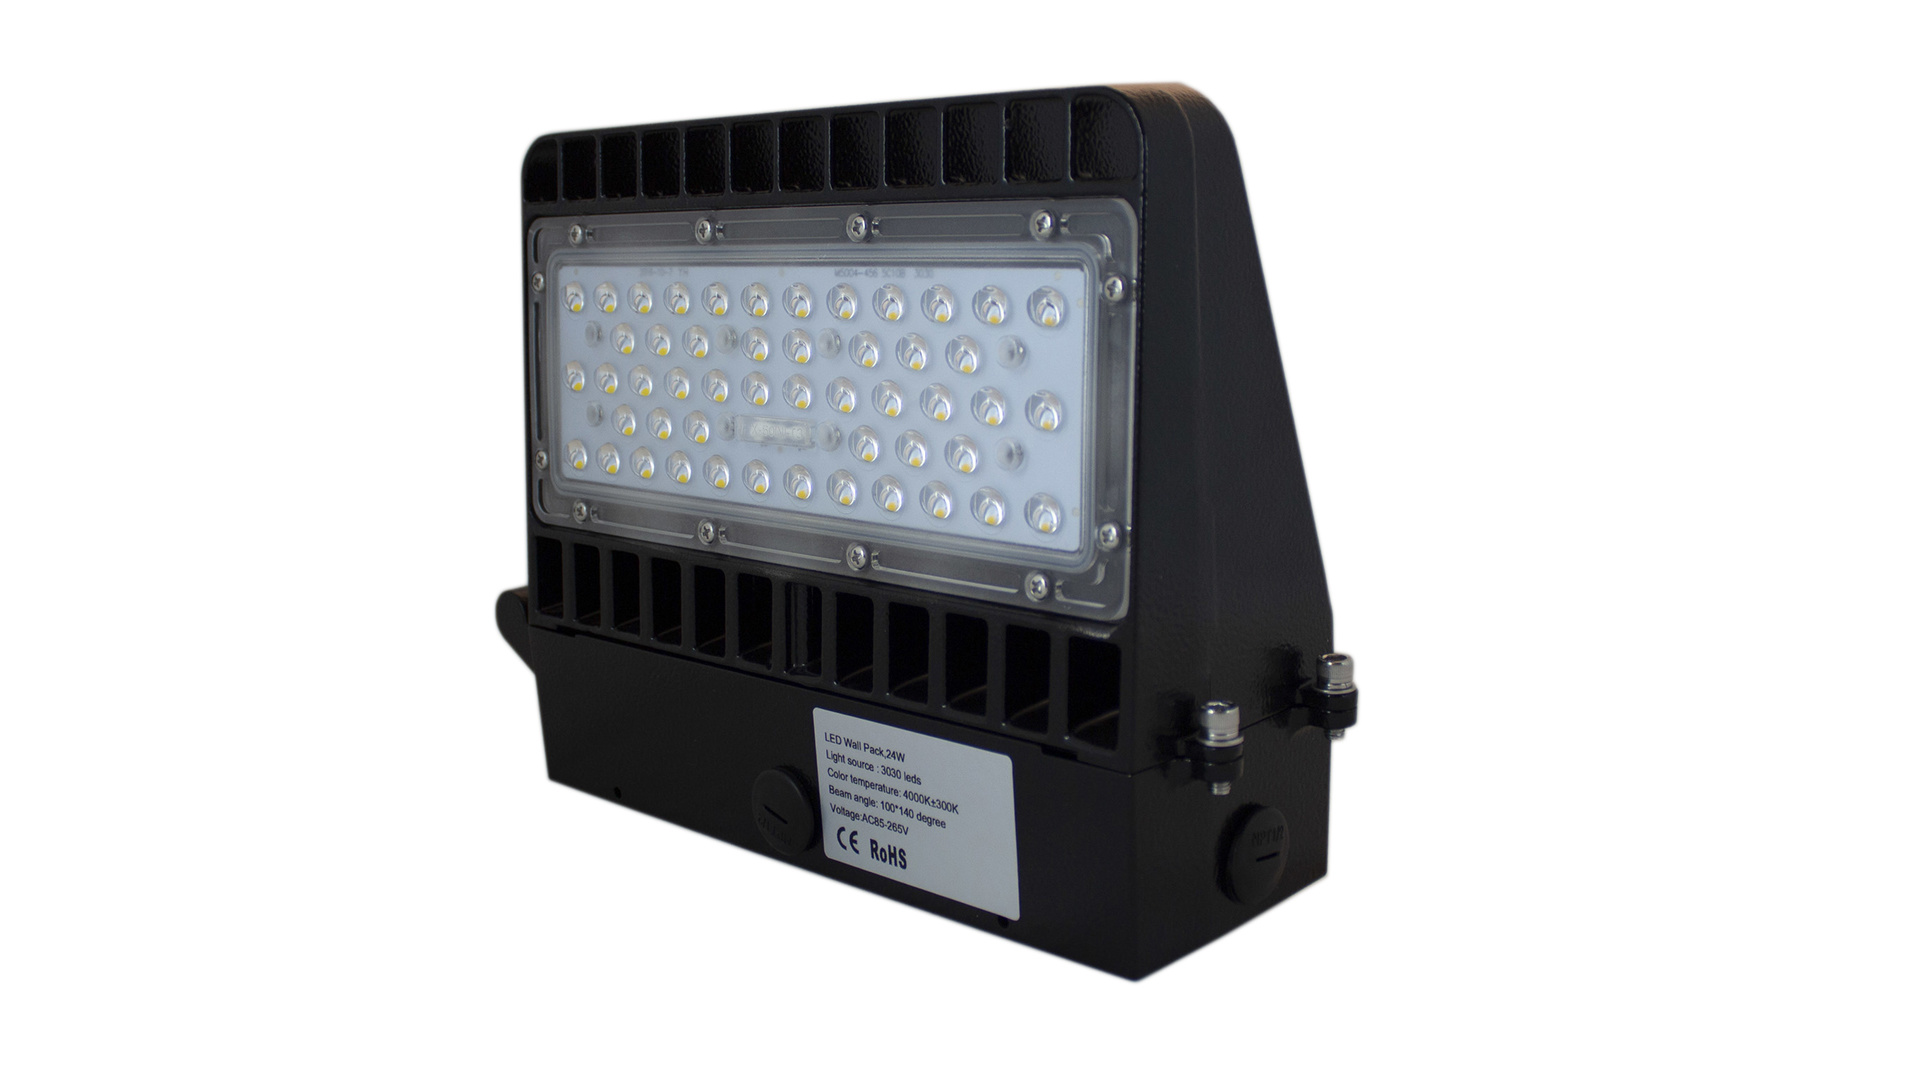 LED Wall Floodlight 24W, IP65, 4000K, Dag/Nacht sensor